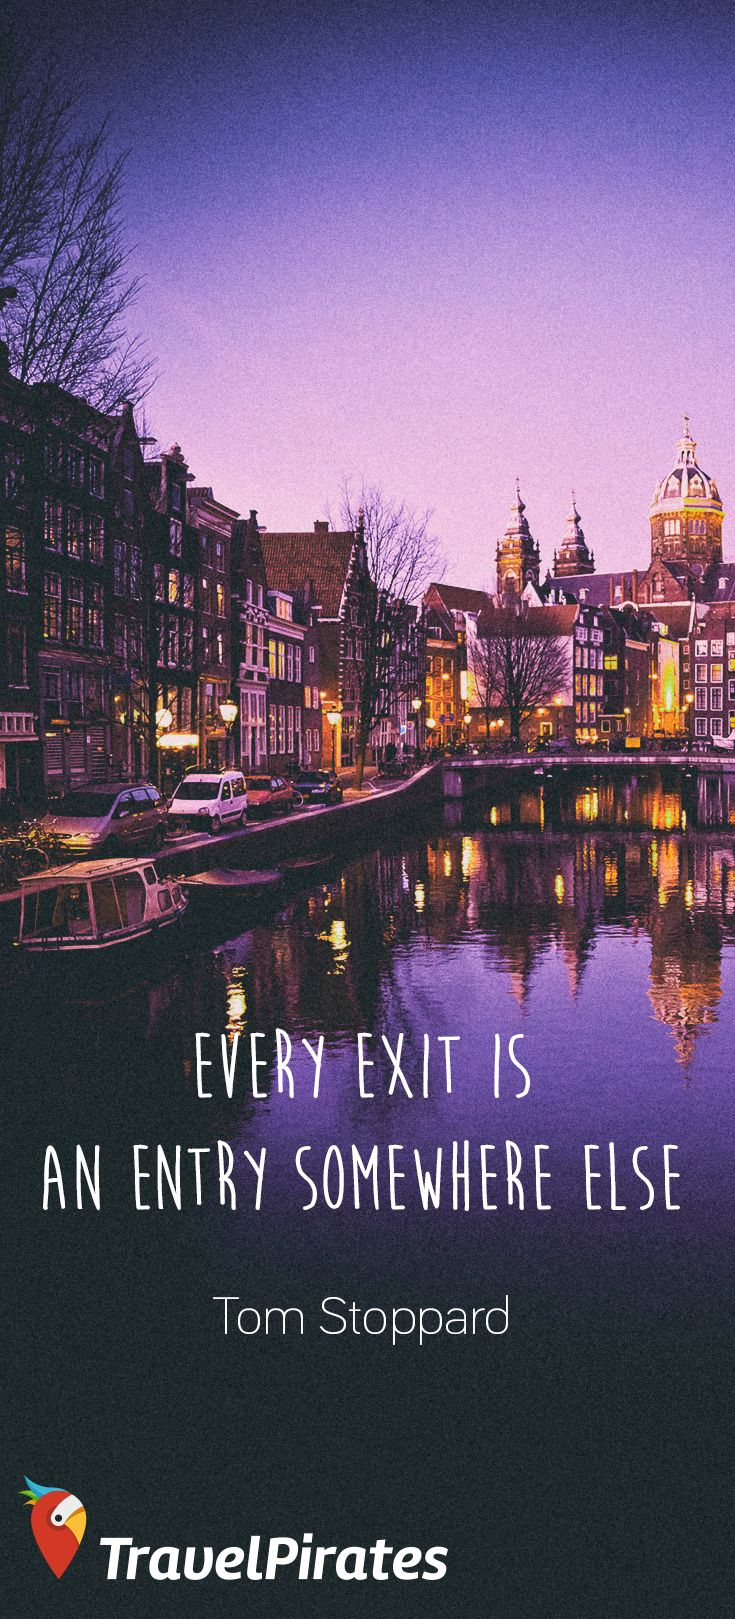 Amsterdam Quotes 49 Best Travel Quotes ⭐ Images On Pinterest  Journey Quotes